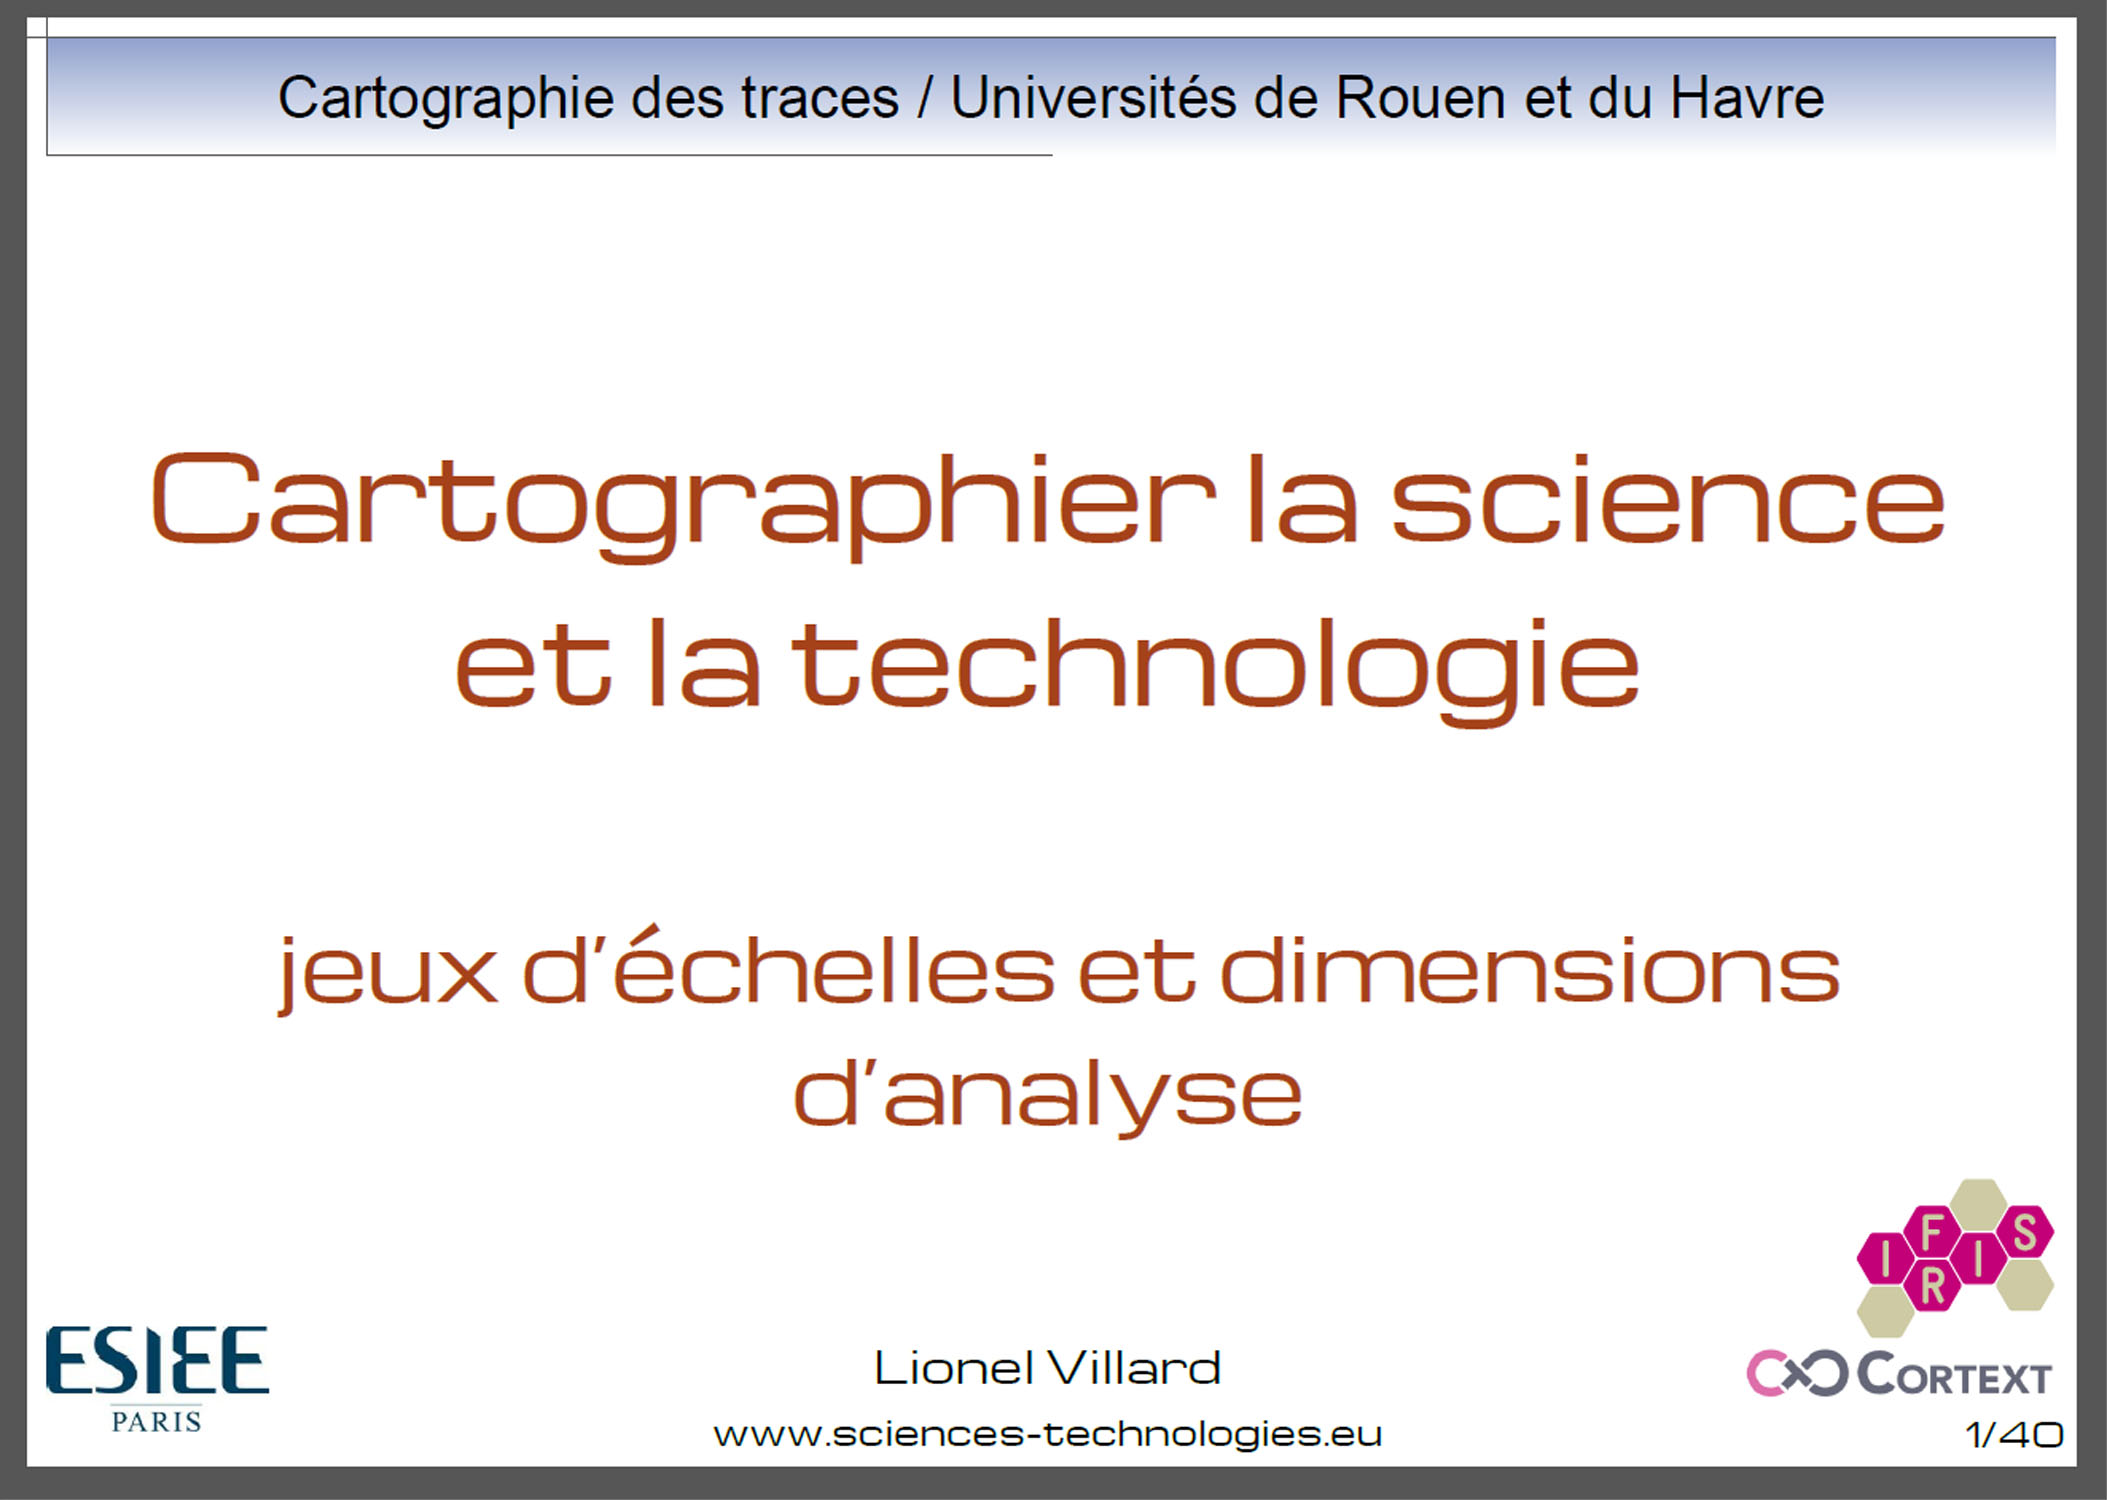 Cartographier la science et la technologie